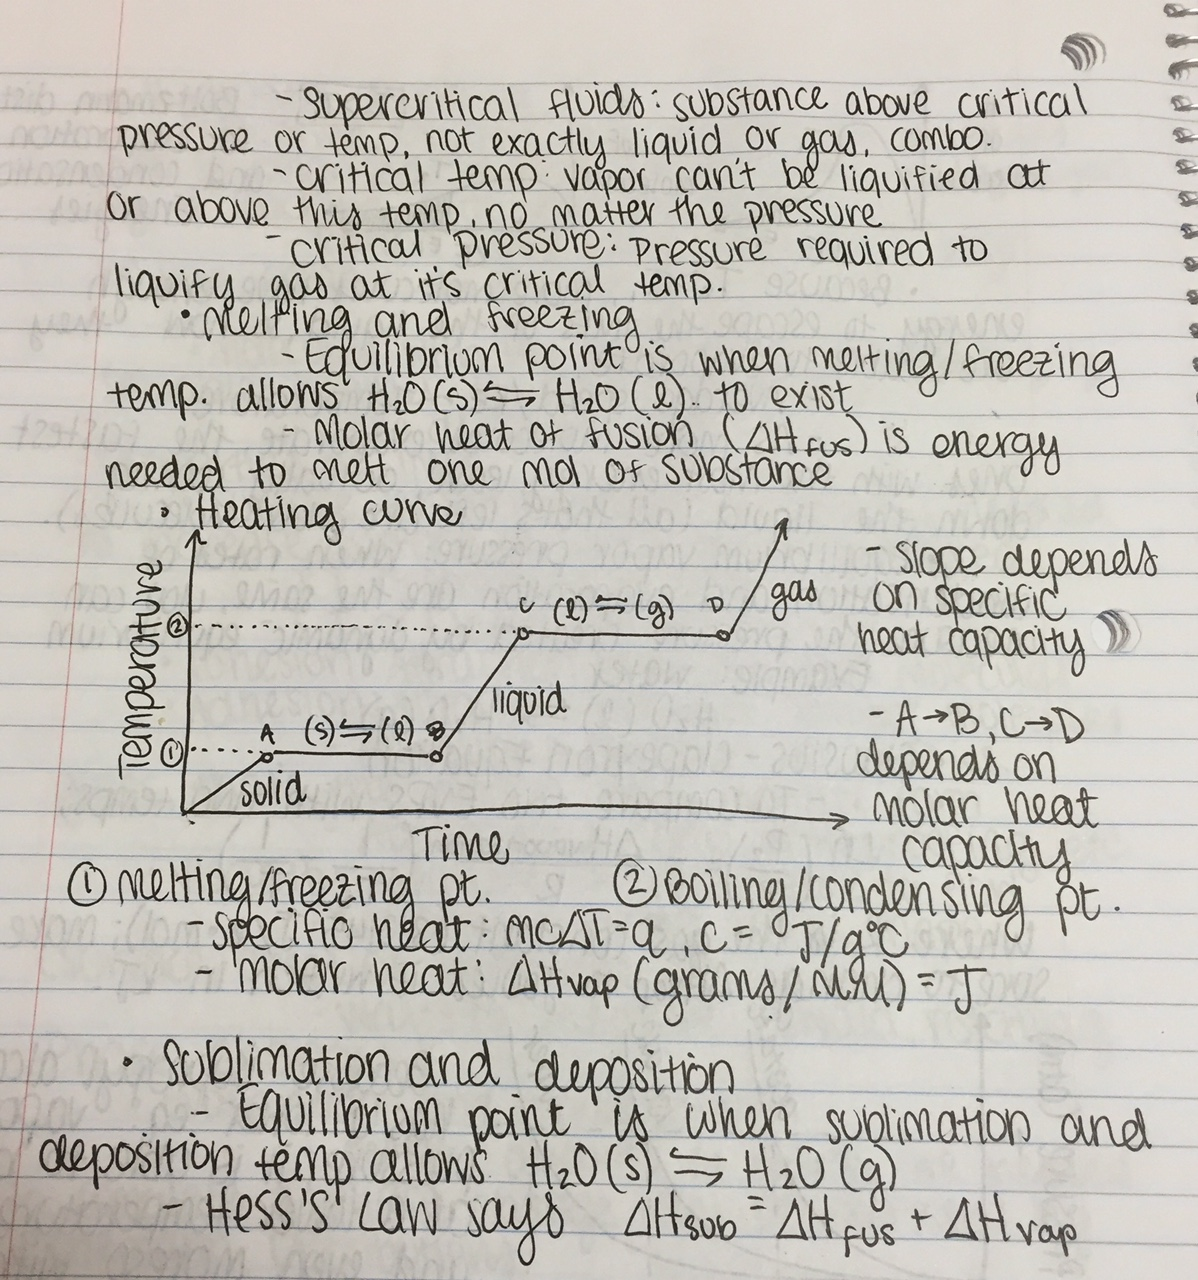 CH 102 - Class Notes - Week 4